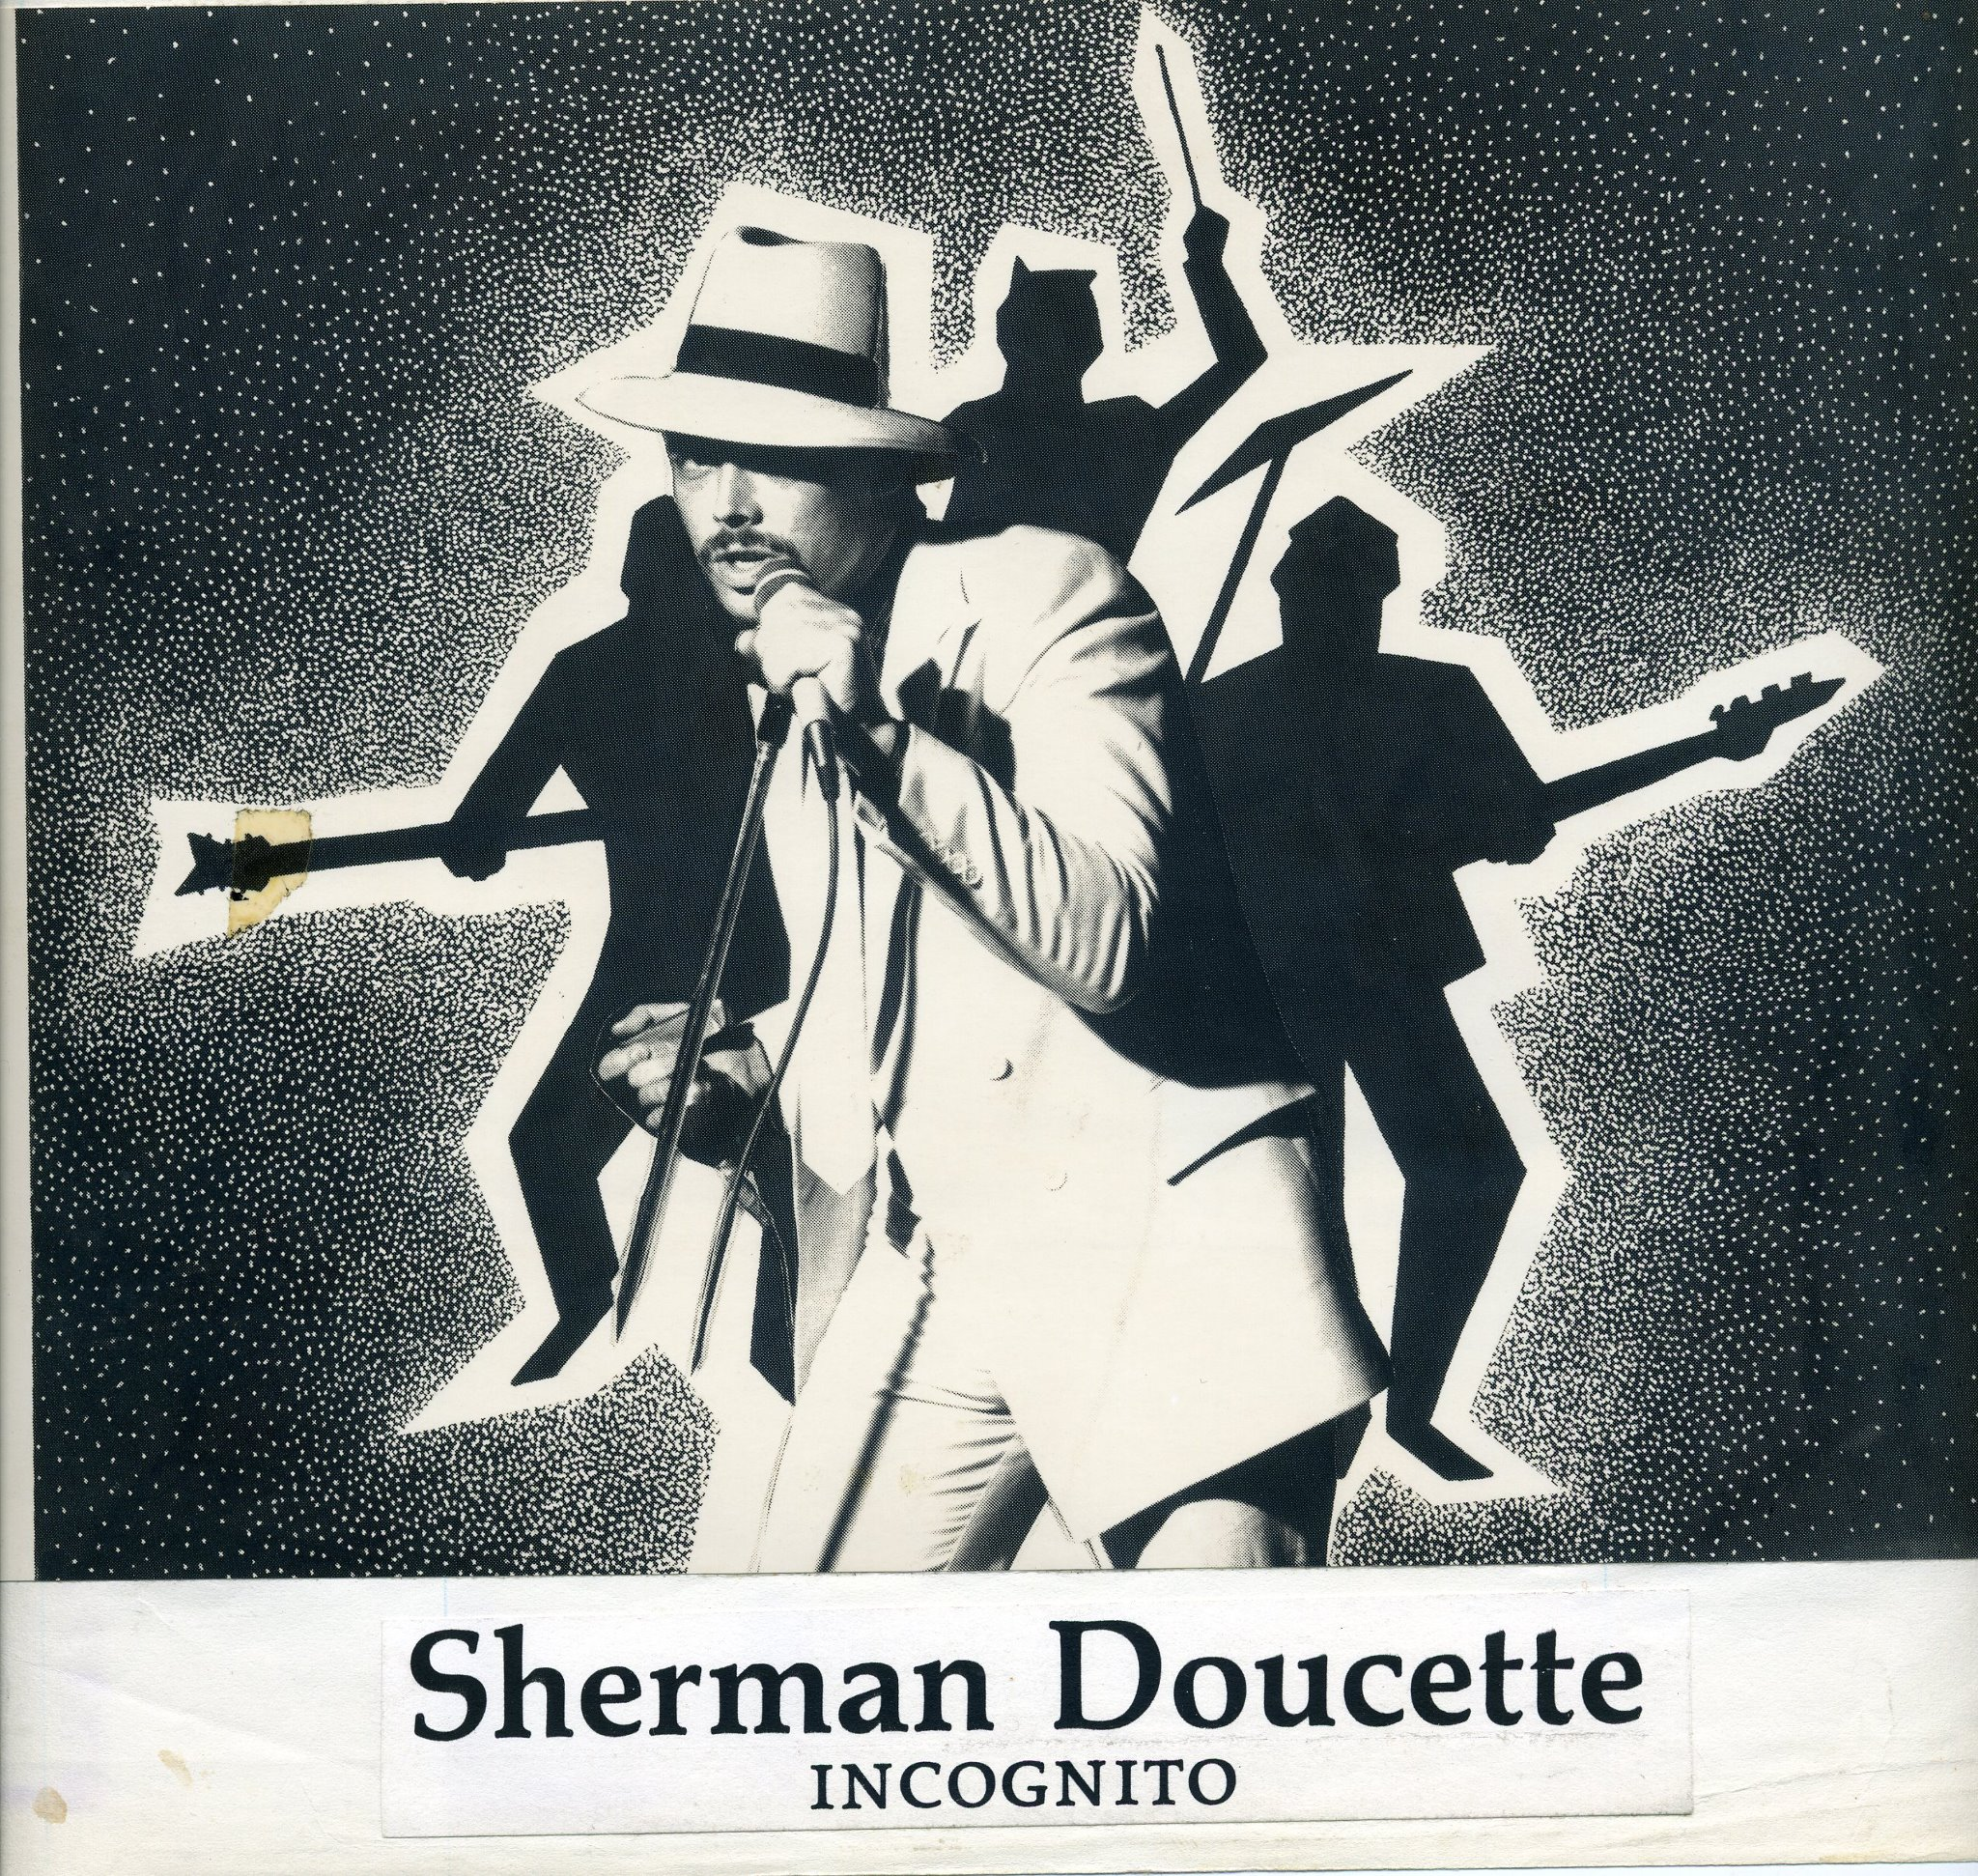 """Sherman 'TANK' Doucette - INCOGNITO's """"Secret Weapon"""" & the true driving force behind the name."""